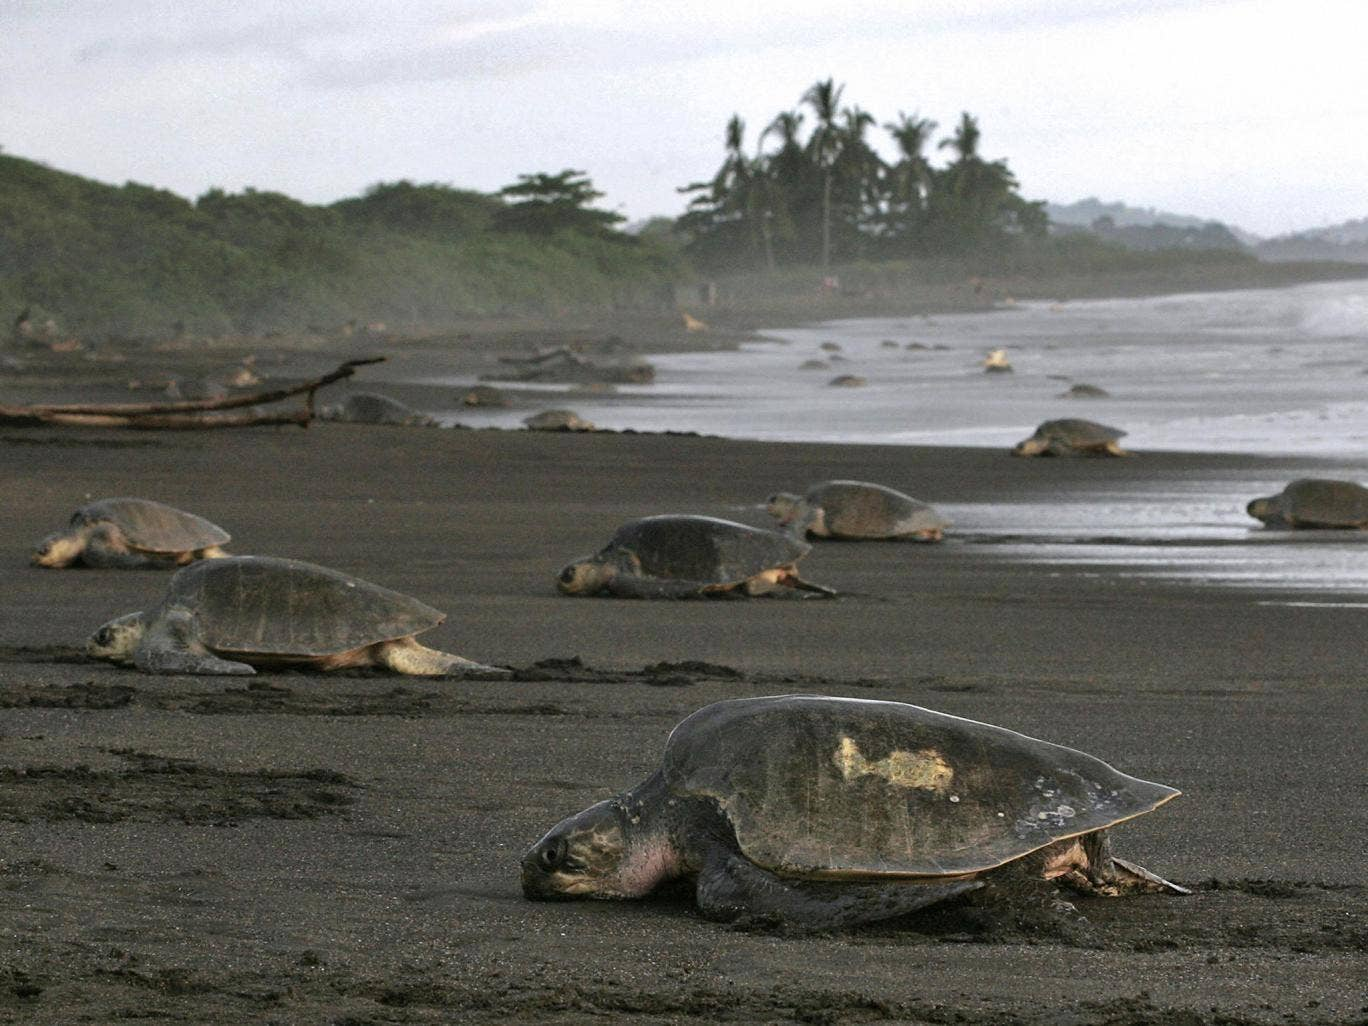 The endangered turtles of Costa Rica